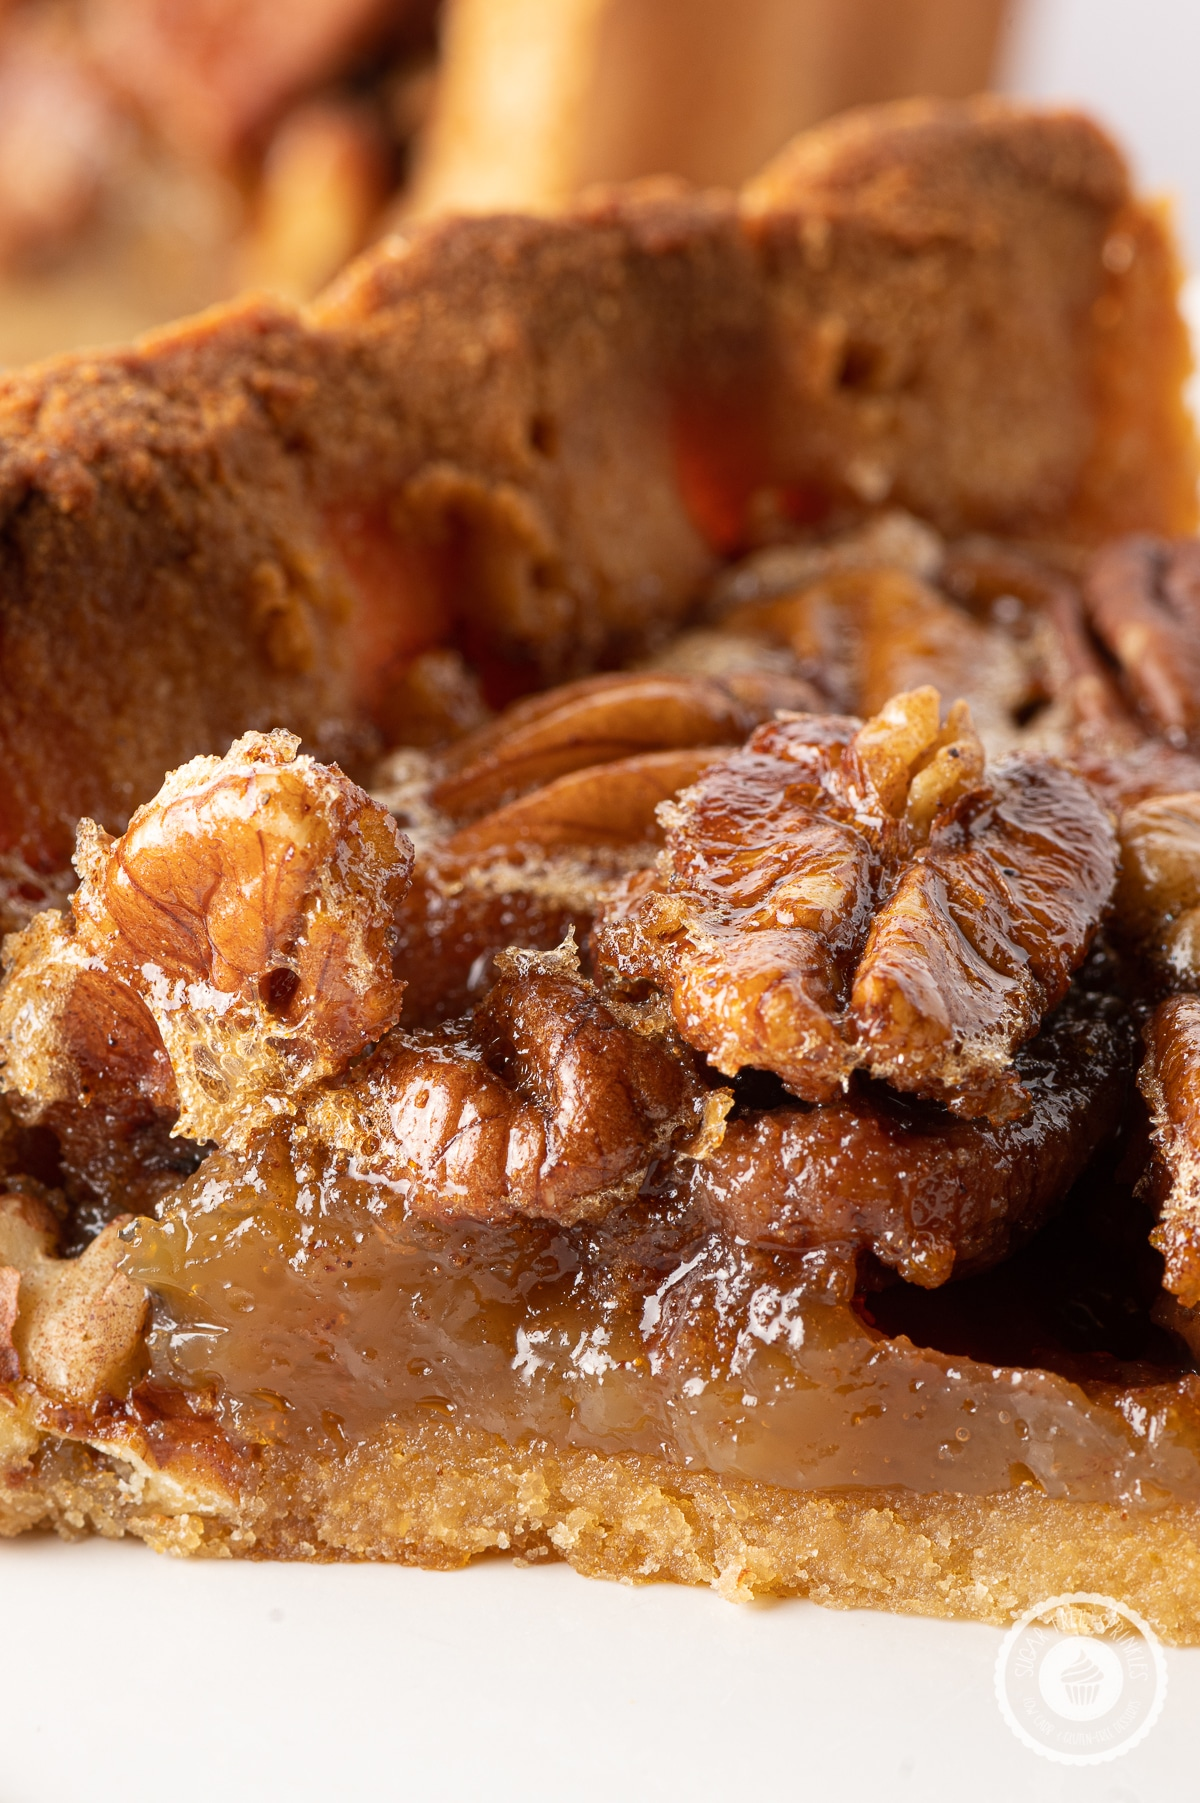 Close up image of a slice of pecan pie with sticky glazed pecans and gooey caramel like filling